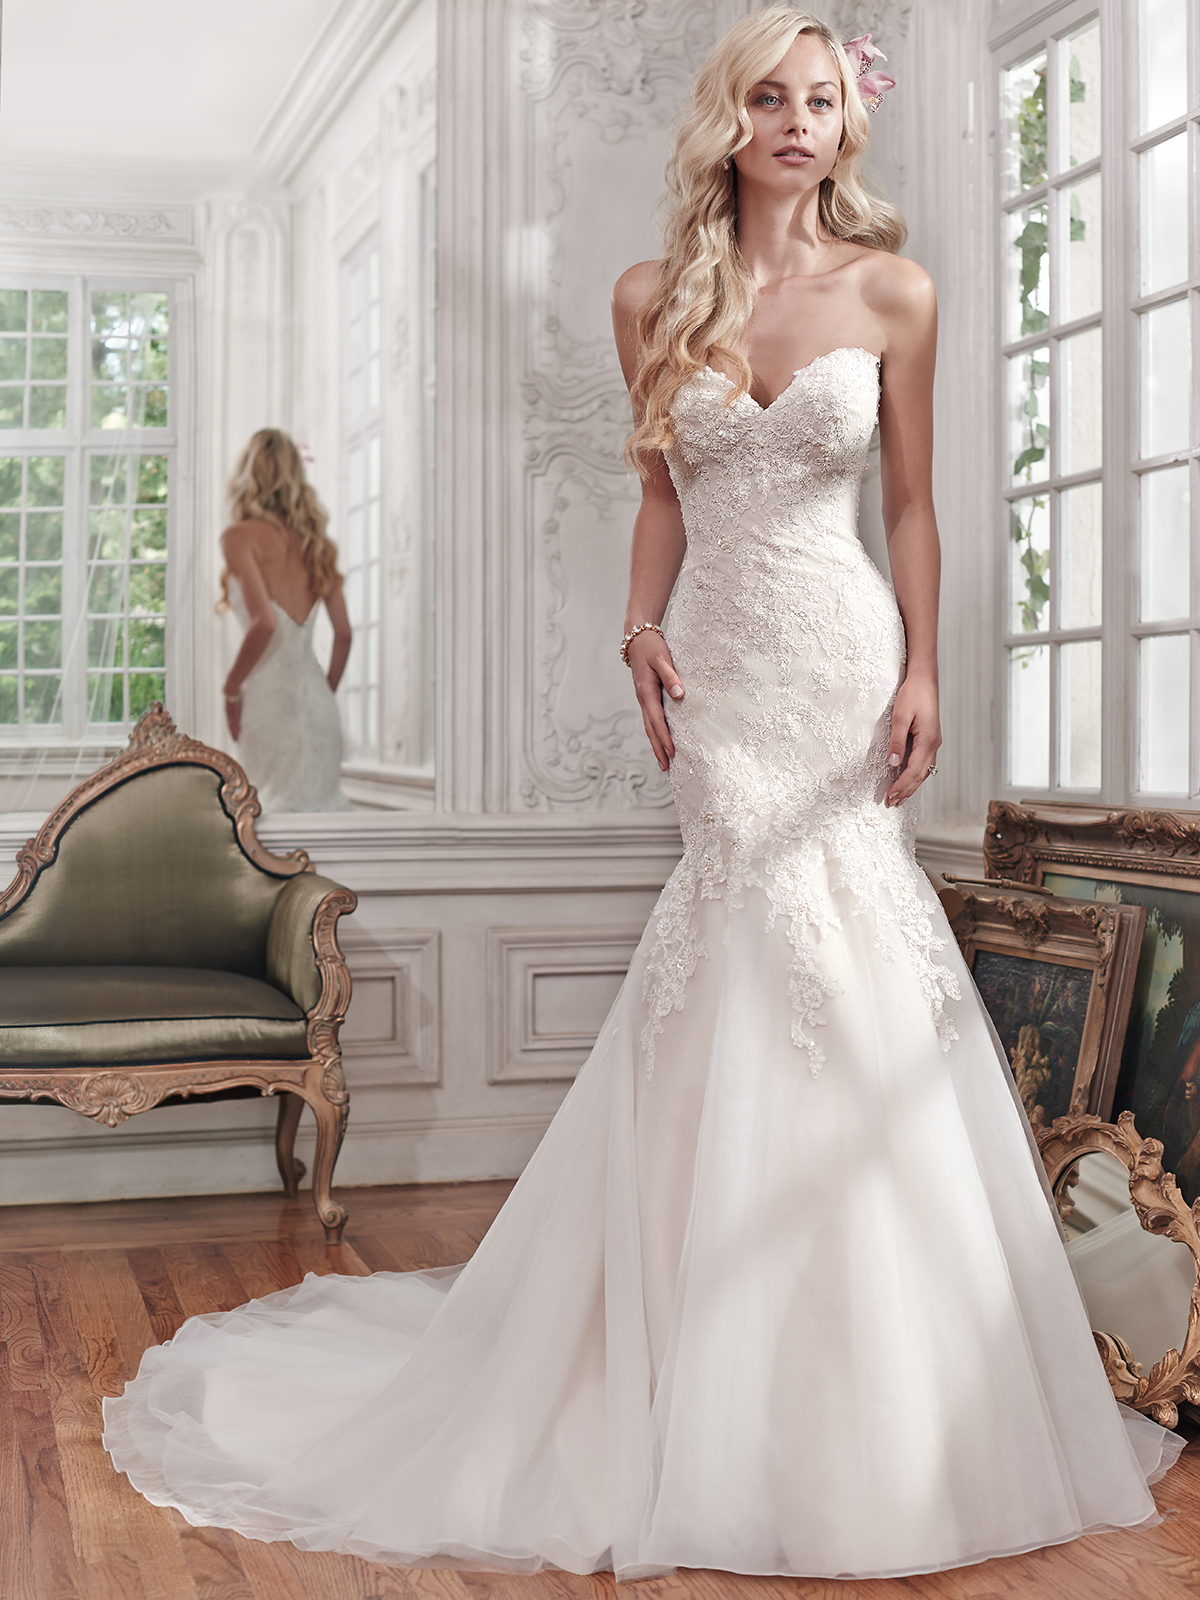 Maggie Sottero Miranda Sweetheart Fit And Flare Bridal Dress ...